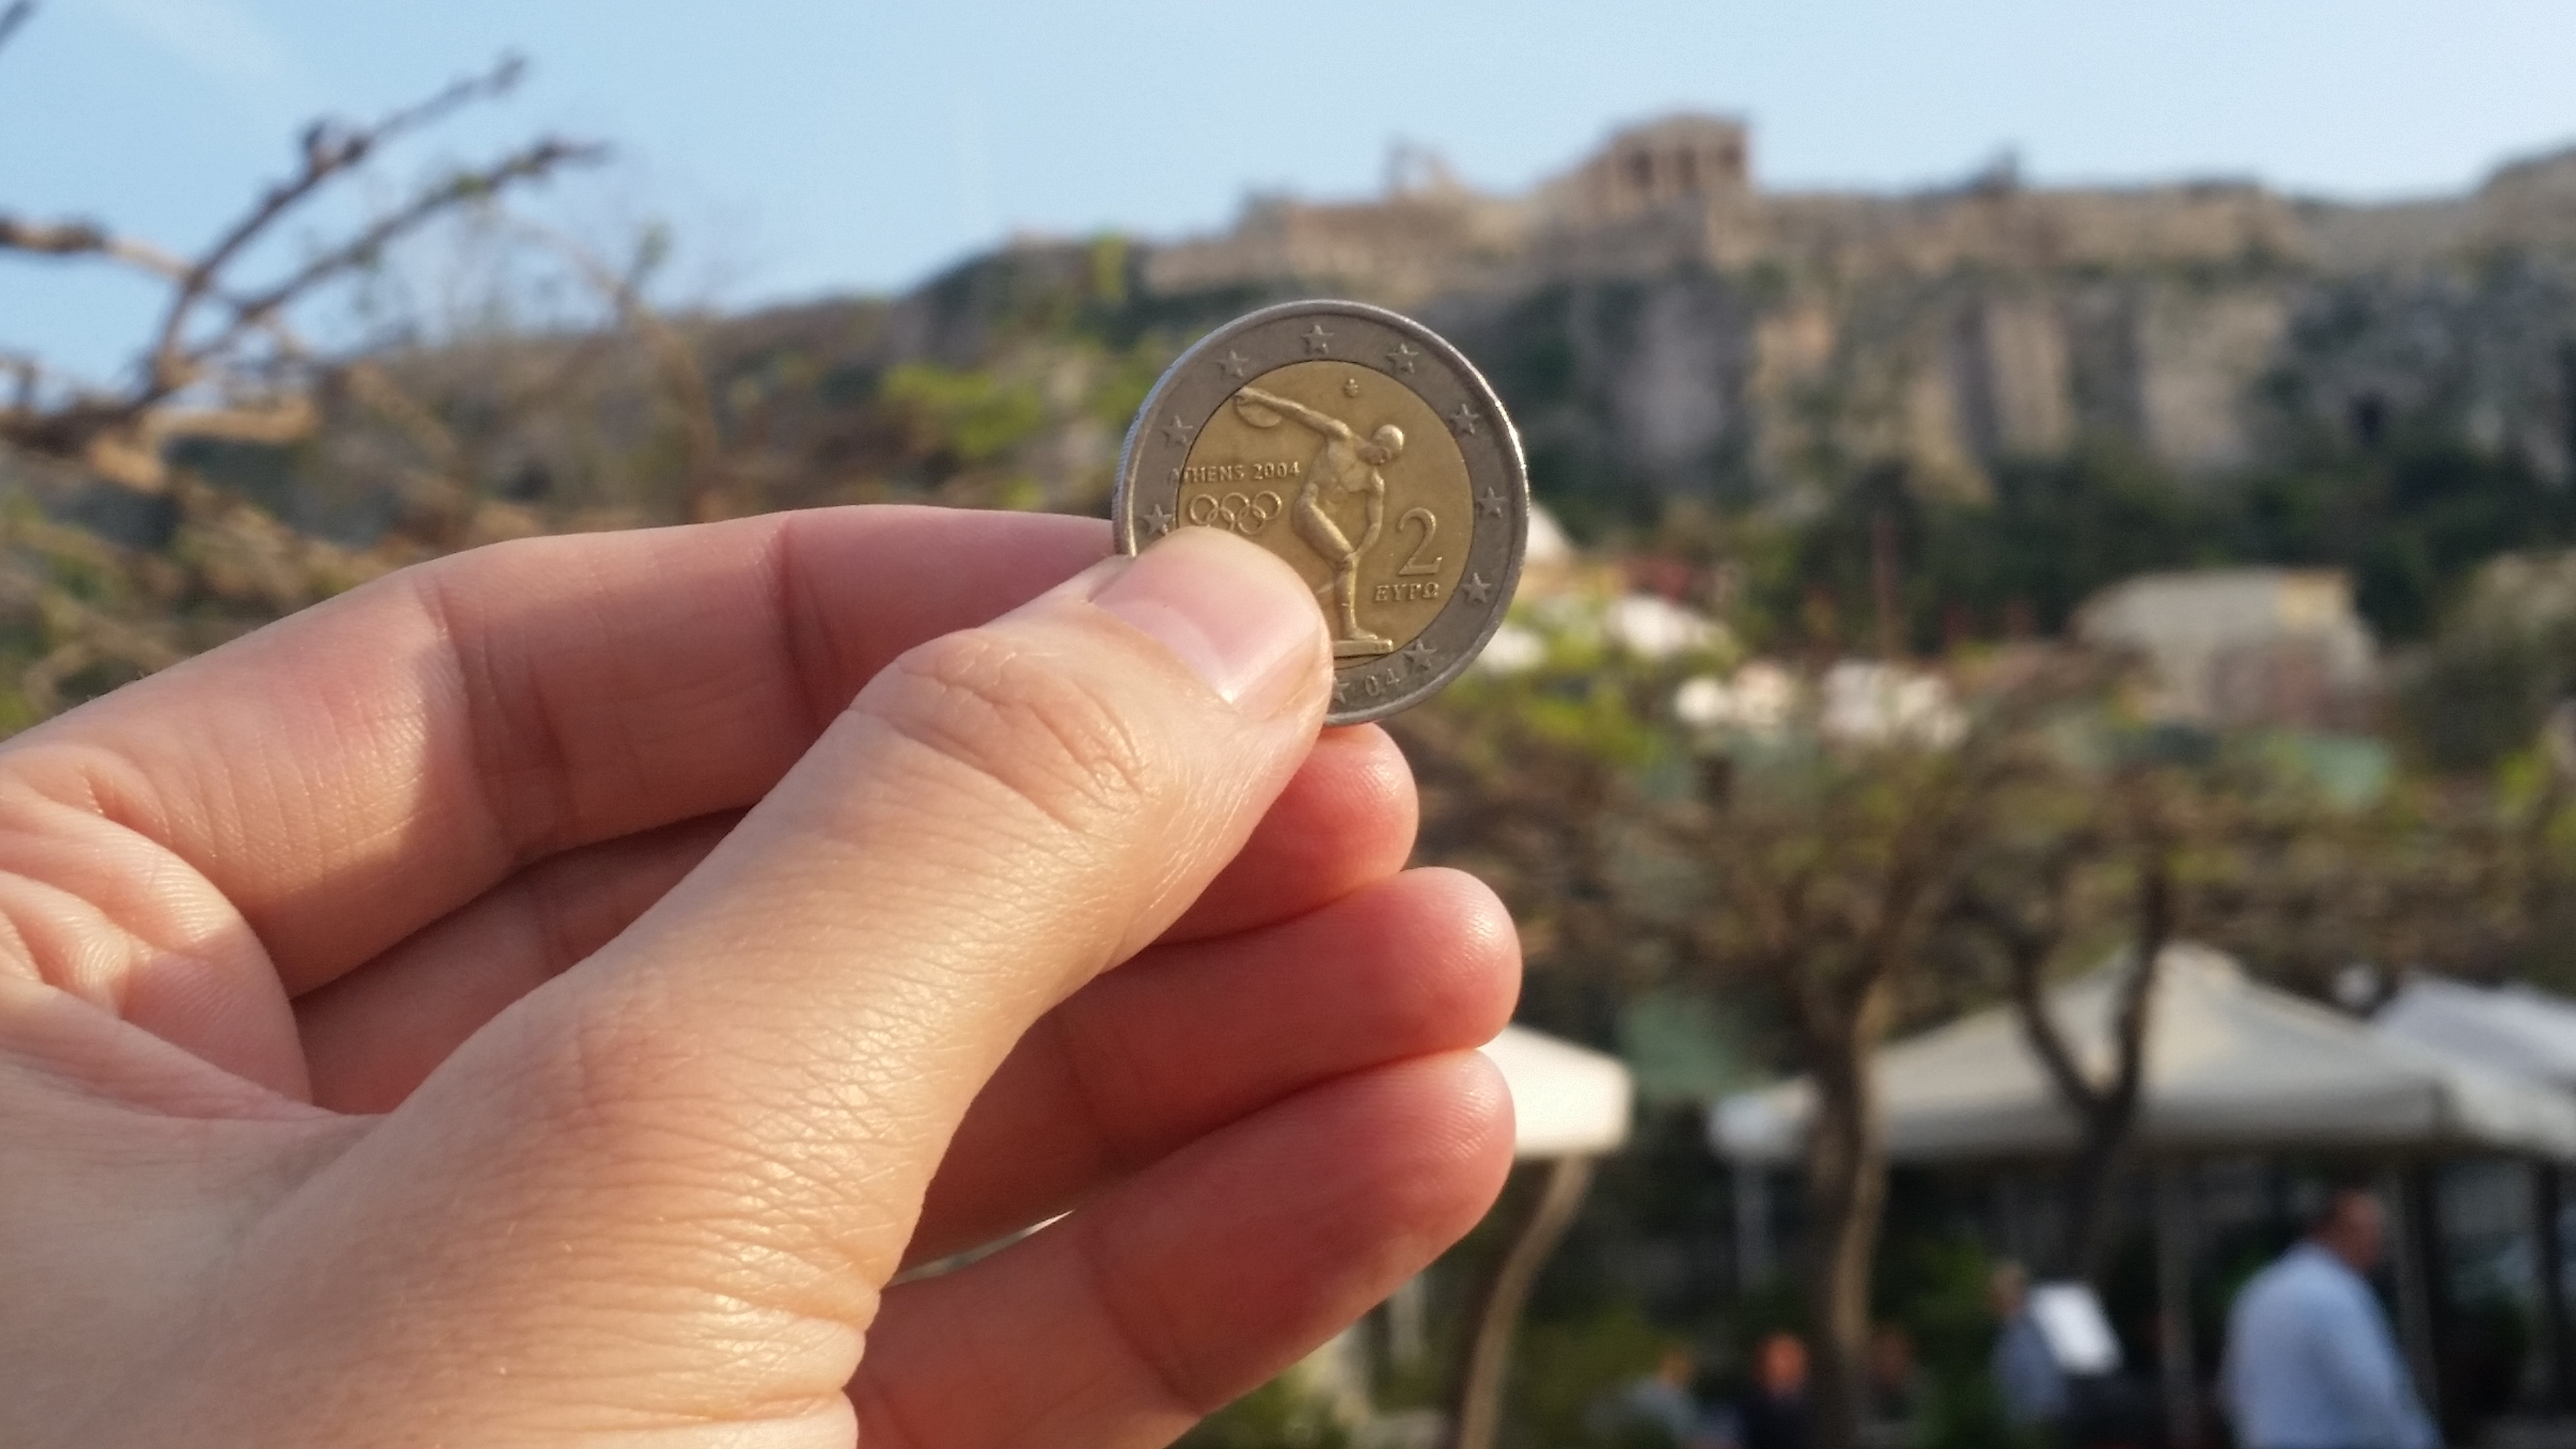 A two Euro coin in front of the Acropolis, Greece